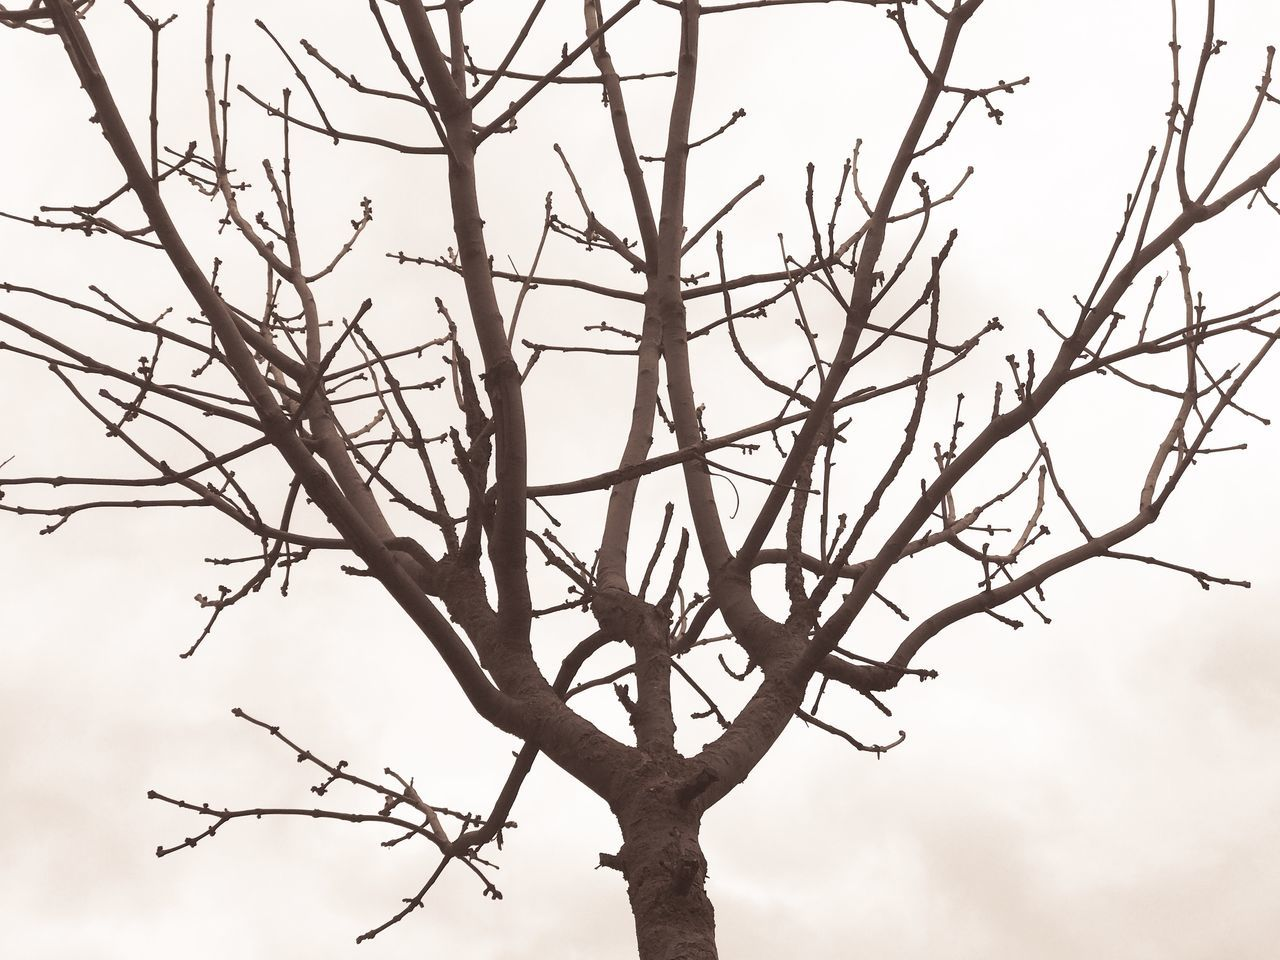 branch, bare tree, tree, low angle view, outdoors, nature, day, beauty in nature, no people, sky, close-up